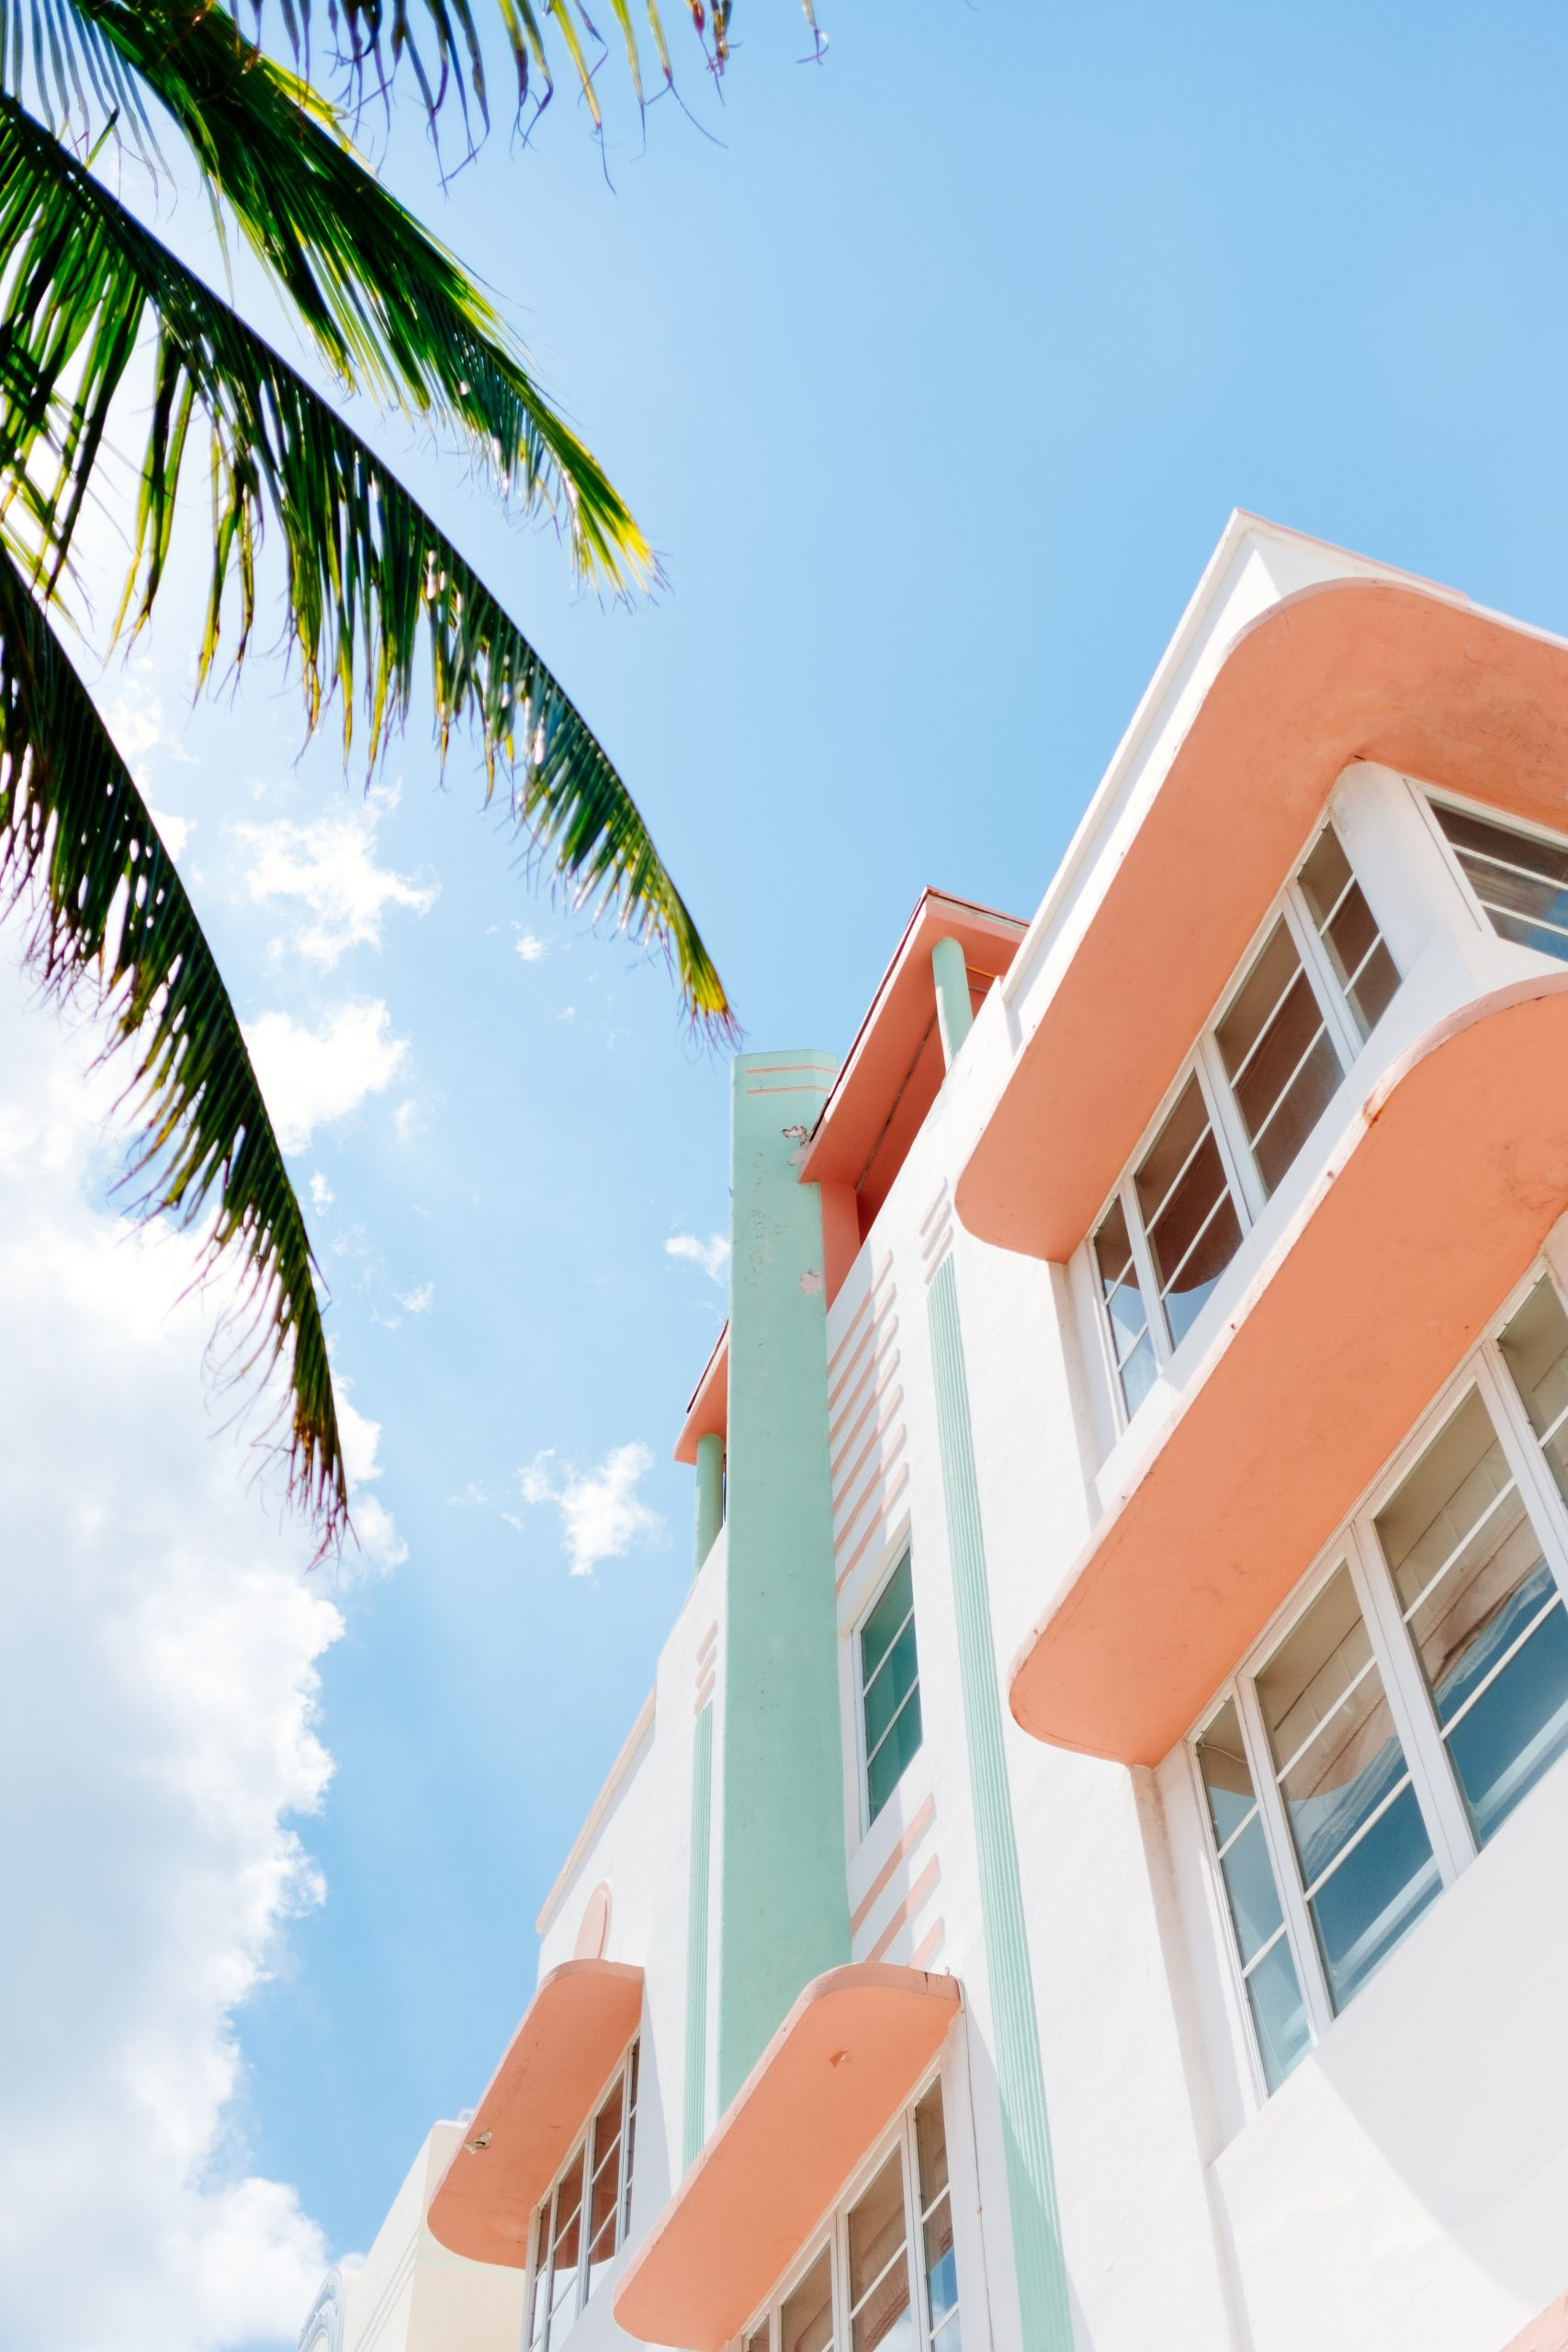 5 Reasons Now Is the Right Time to Invest in Miami Property